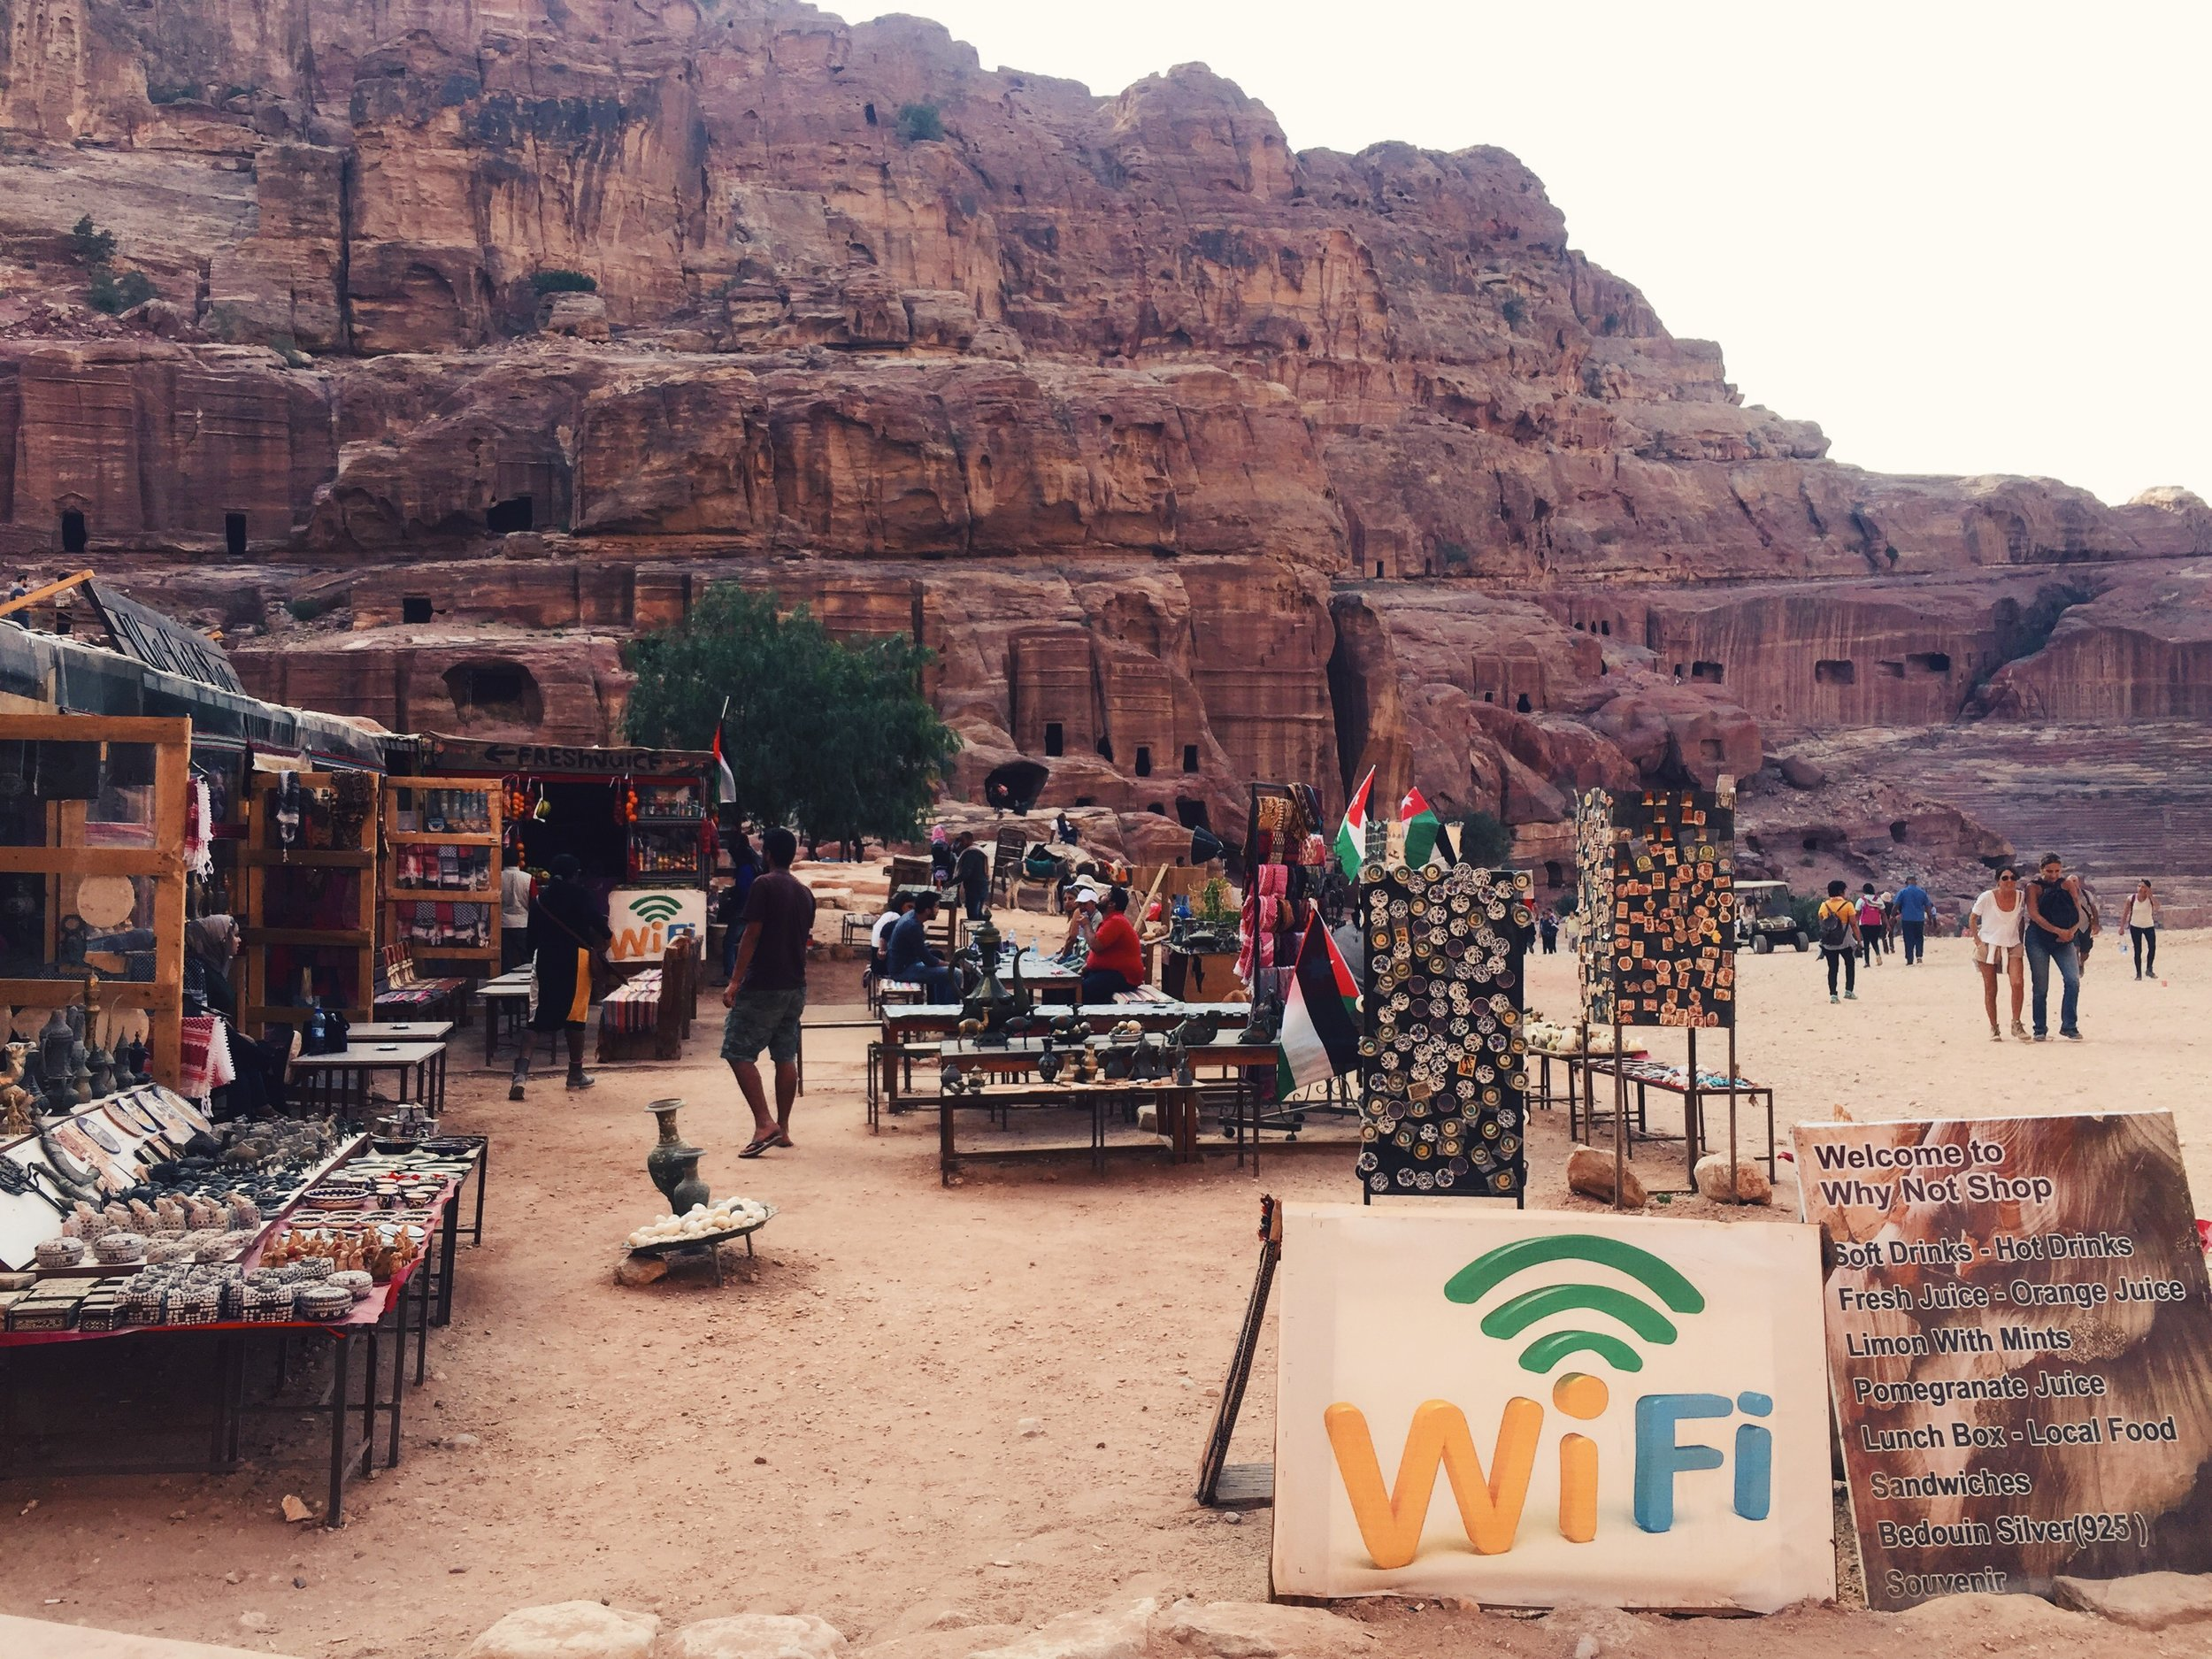 Even the ancient ruins of Petra in Jordan have wifi.